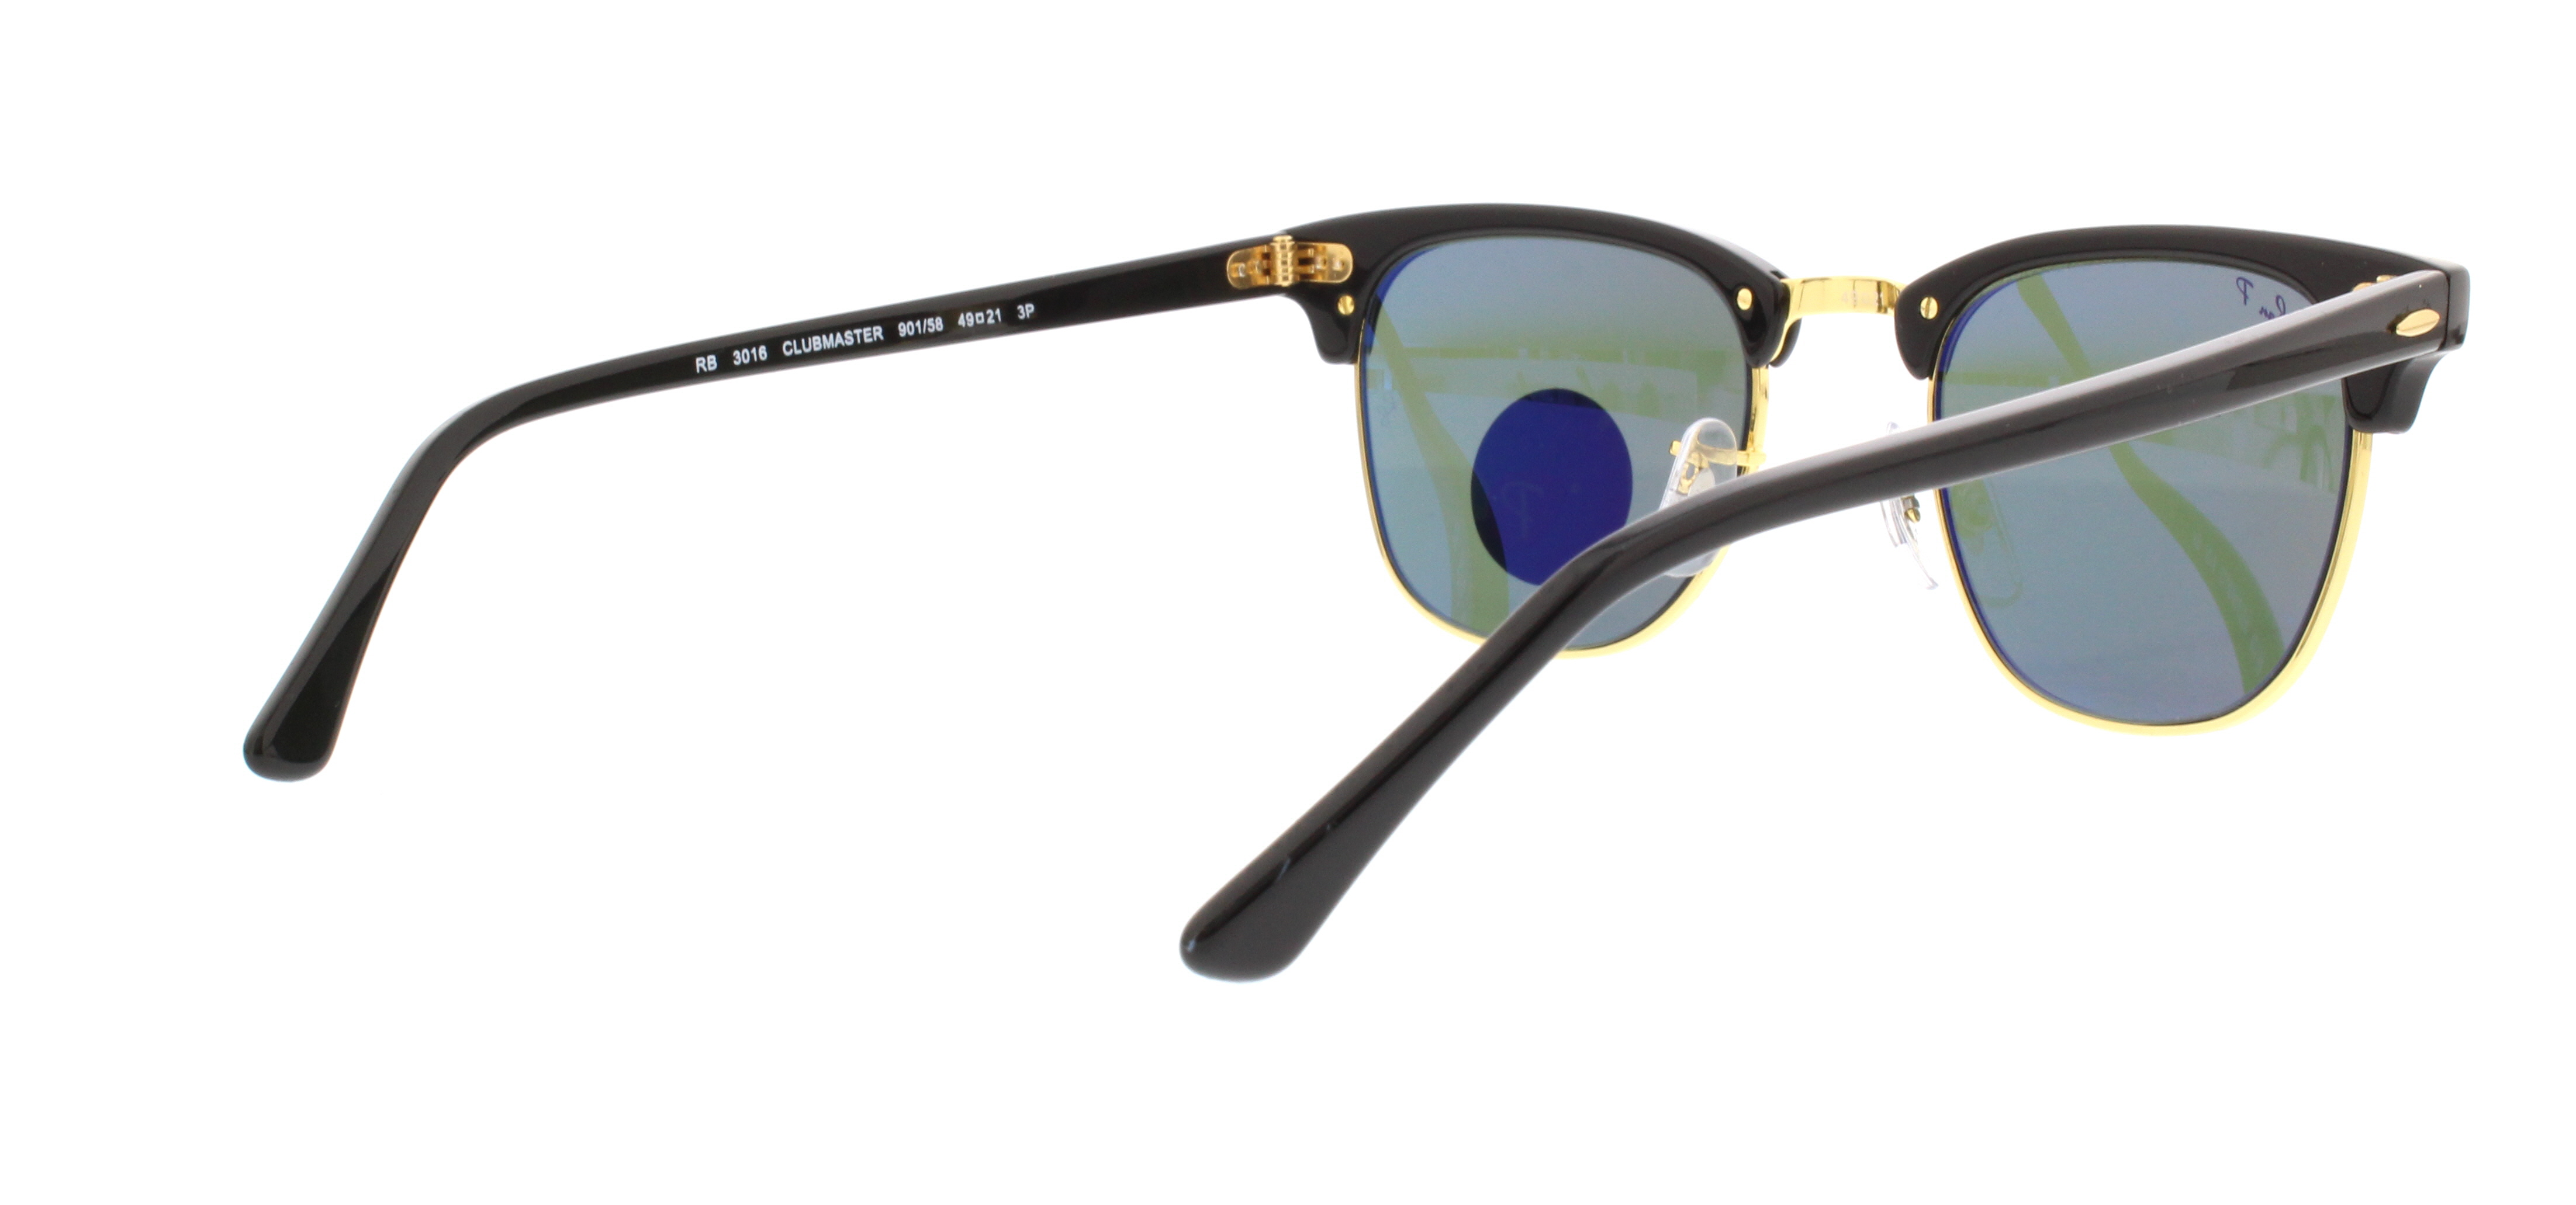 5229e45dfe0 denmark ray ban rb3016 clubmaster polarized 901 58 sunglasses 56e4b d8b8d   canada picture of ray ban sunglasses rb3016 clubmaster c151b 1fd42